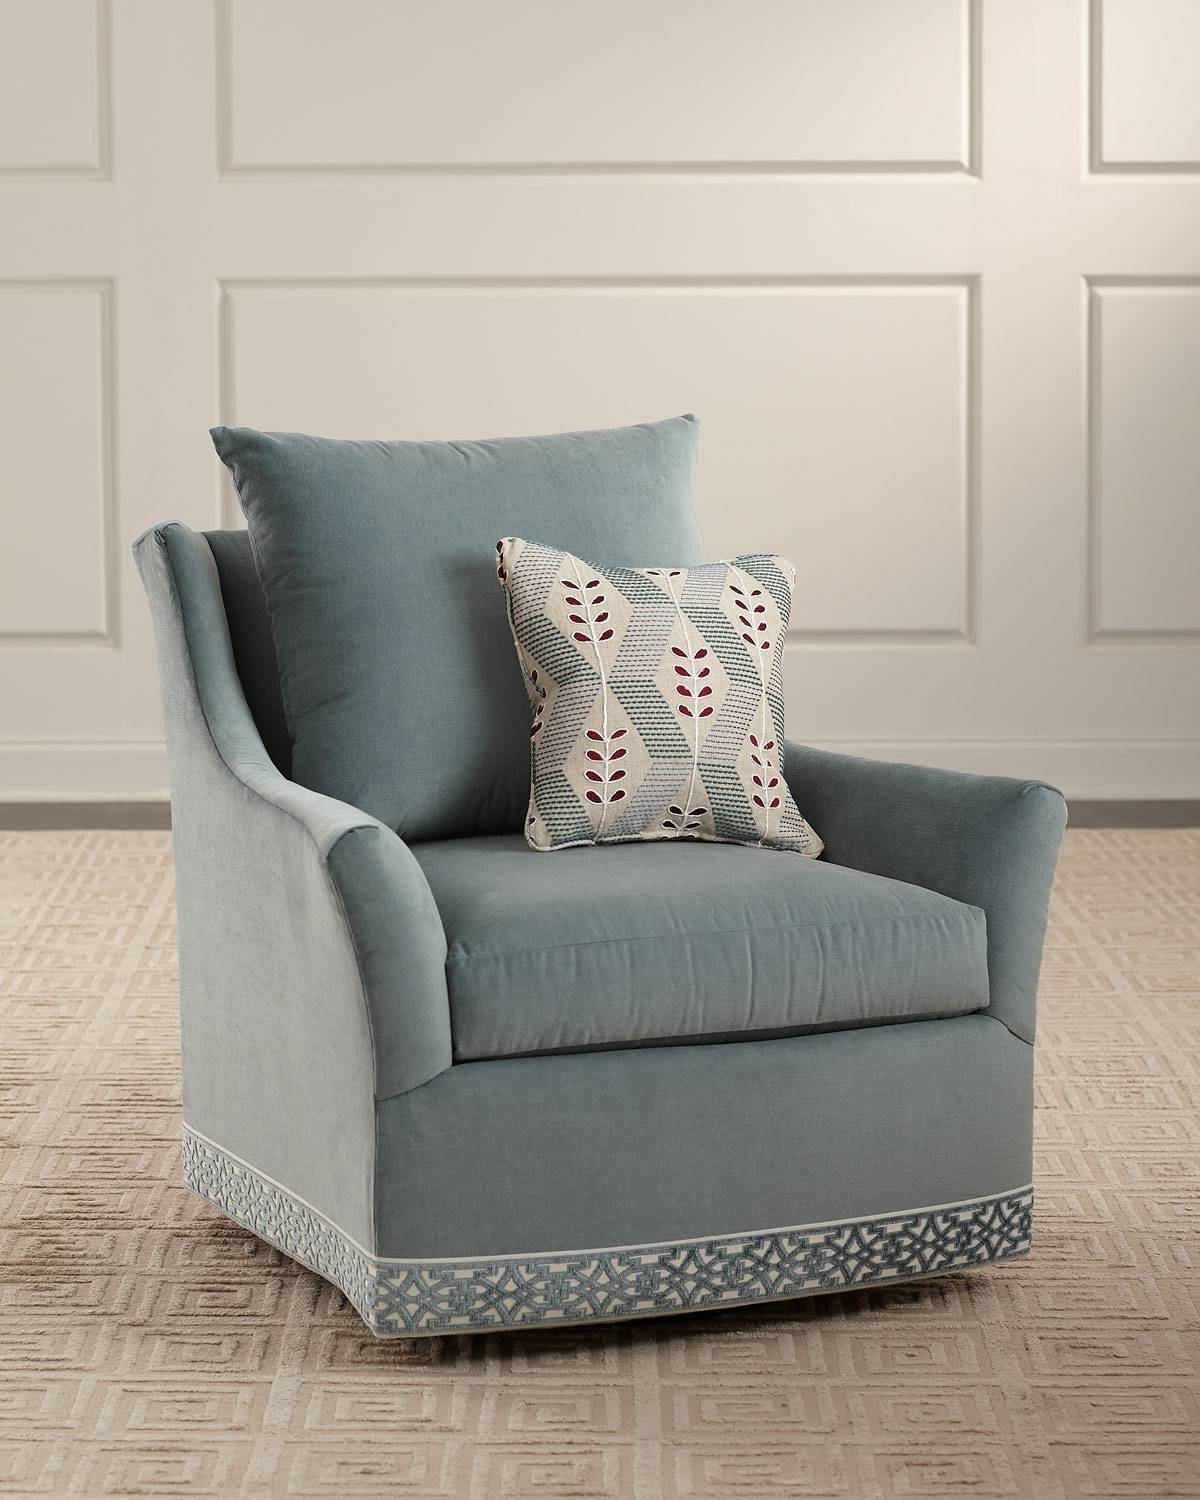 Sweetwater Swivel Chair - Size: unisex